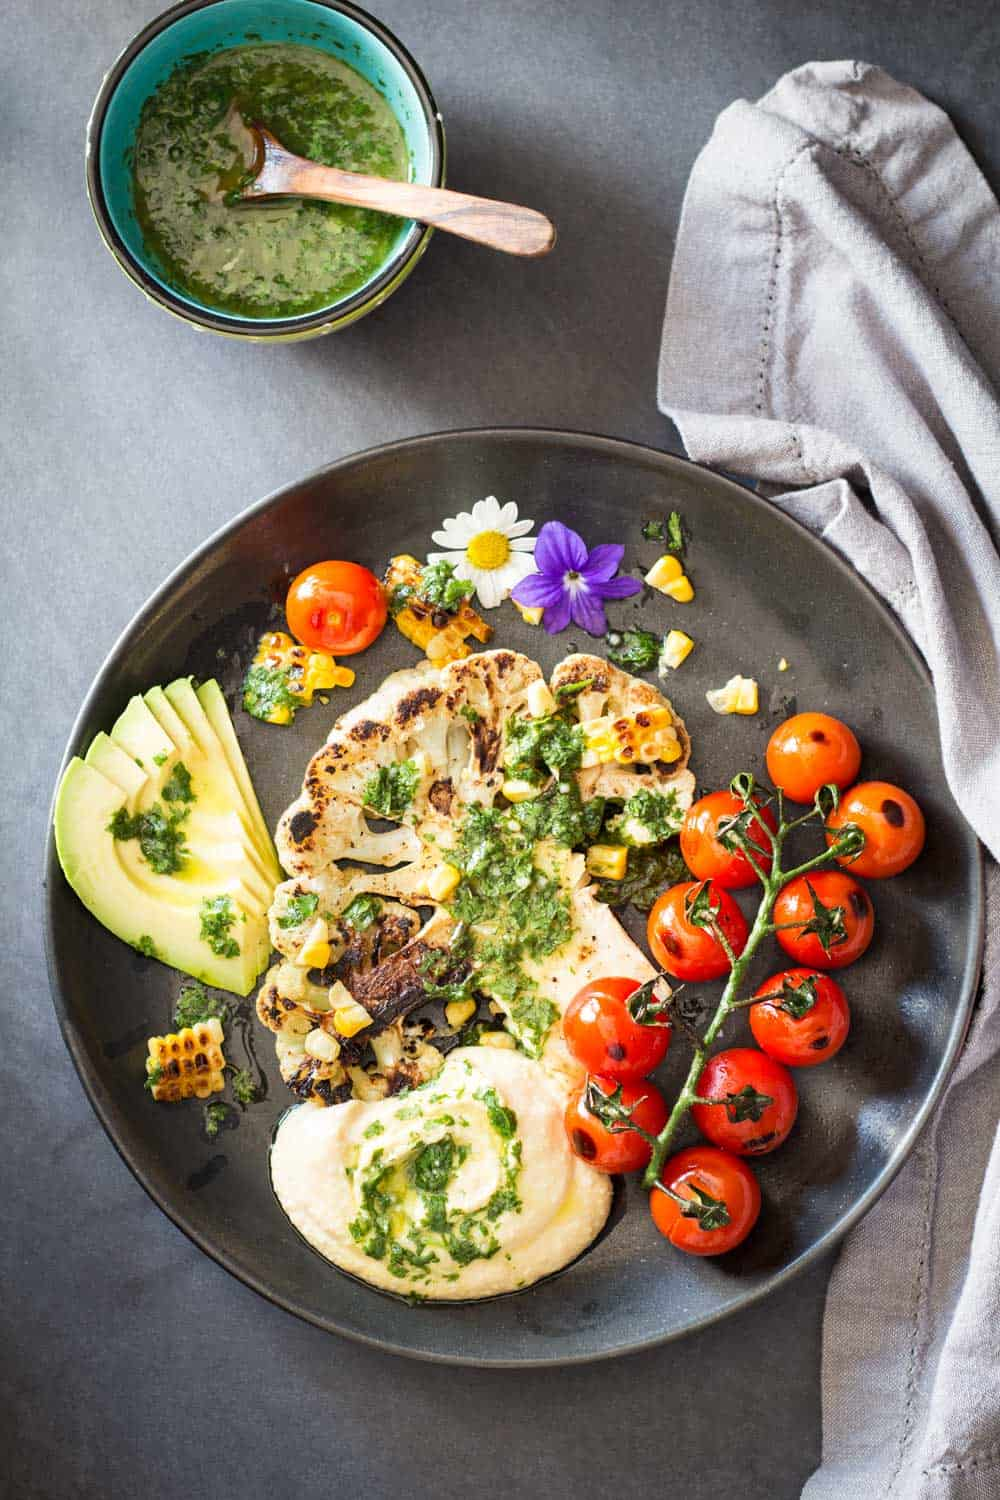 Let the vegan grilling season begin! BBQs are not just for carnivores. Here is healthy and delicious vegan recipe for you: Grilled Cauliflower Steak!